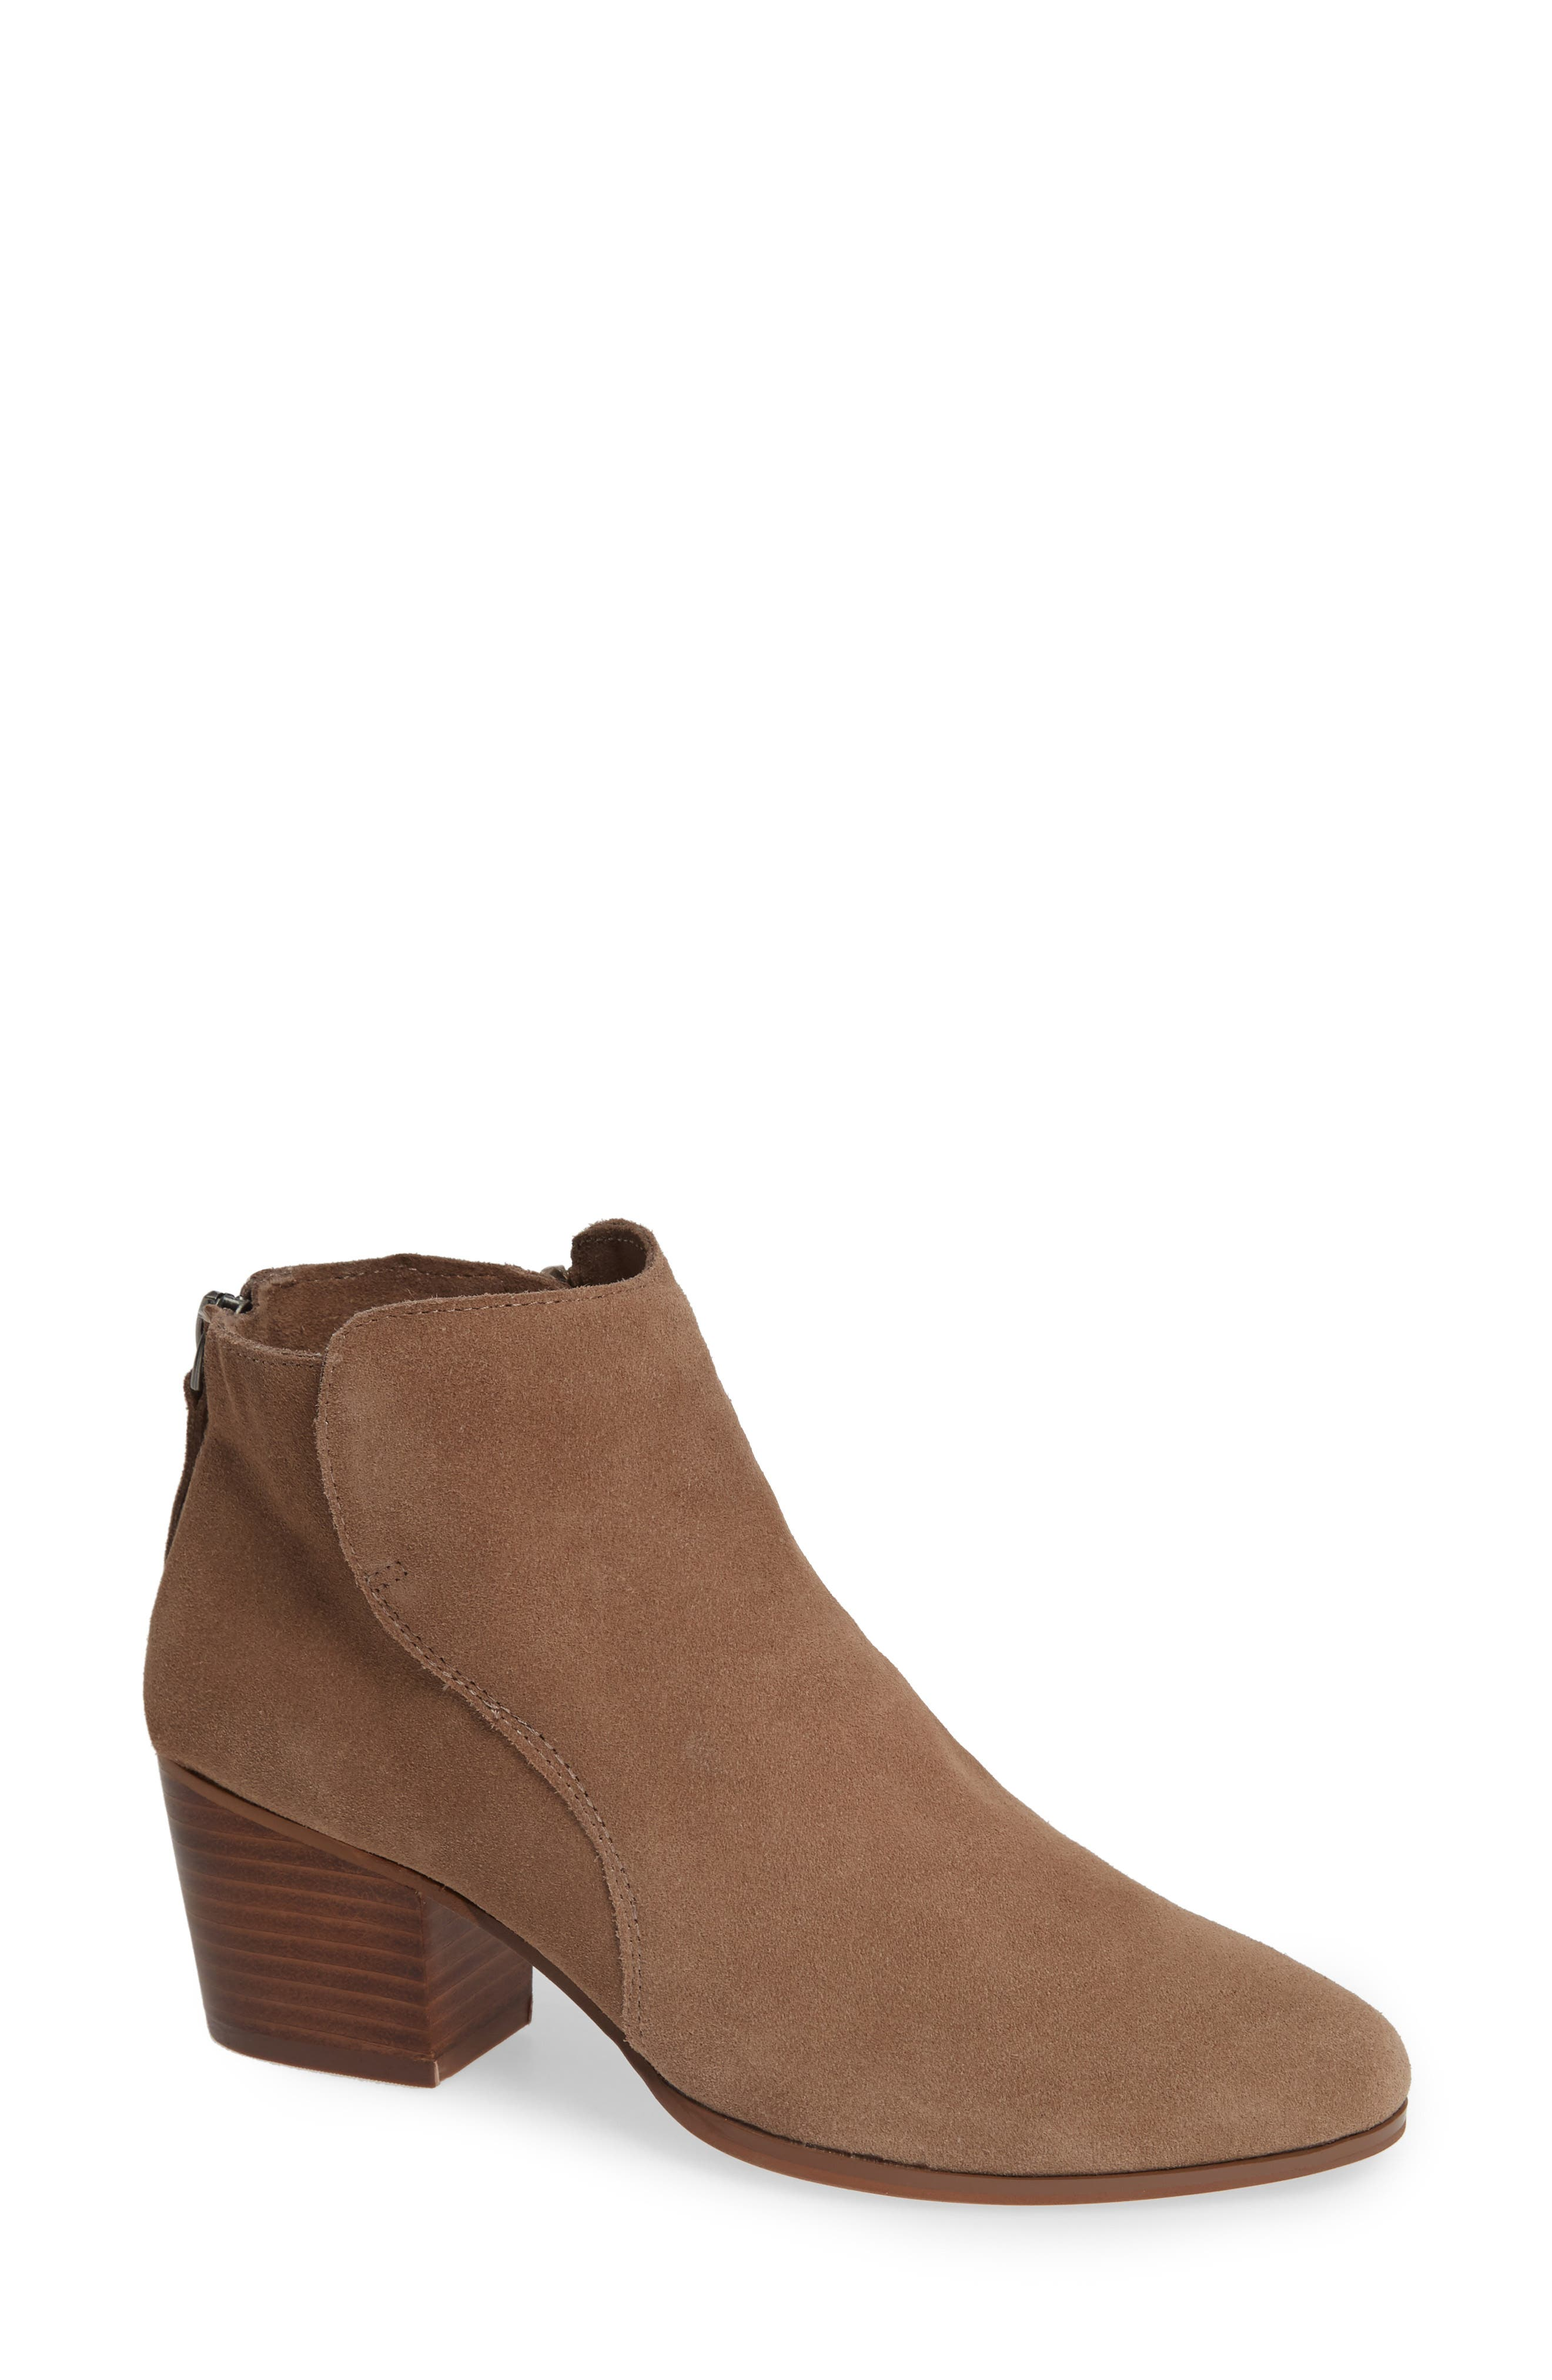 River Bootie,                             Main thumbnail 1, color,                             NEW TAUPE SUEDE